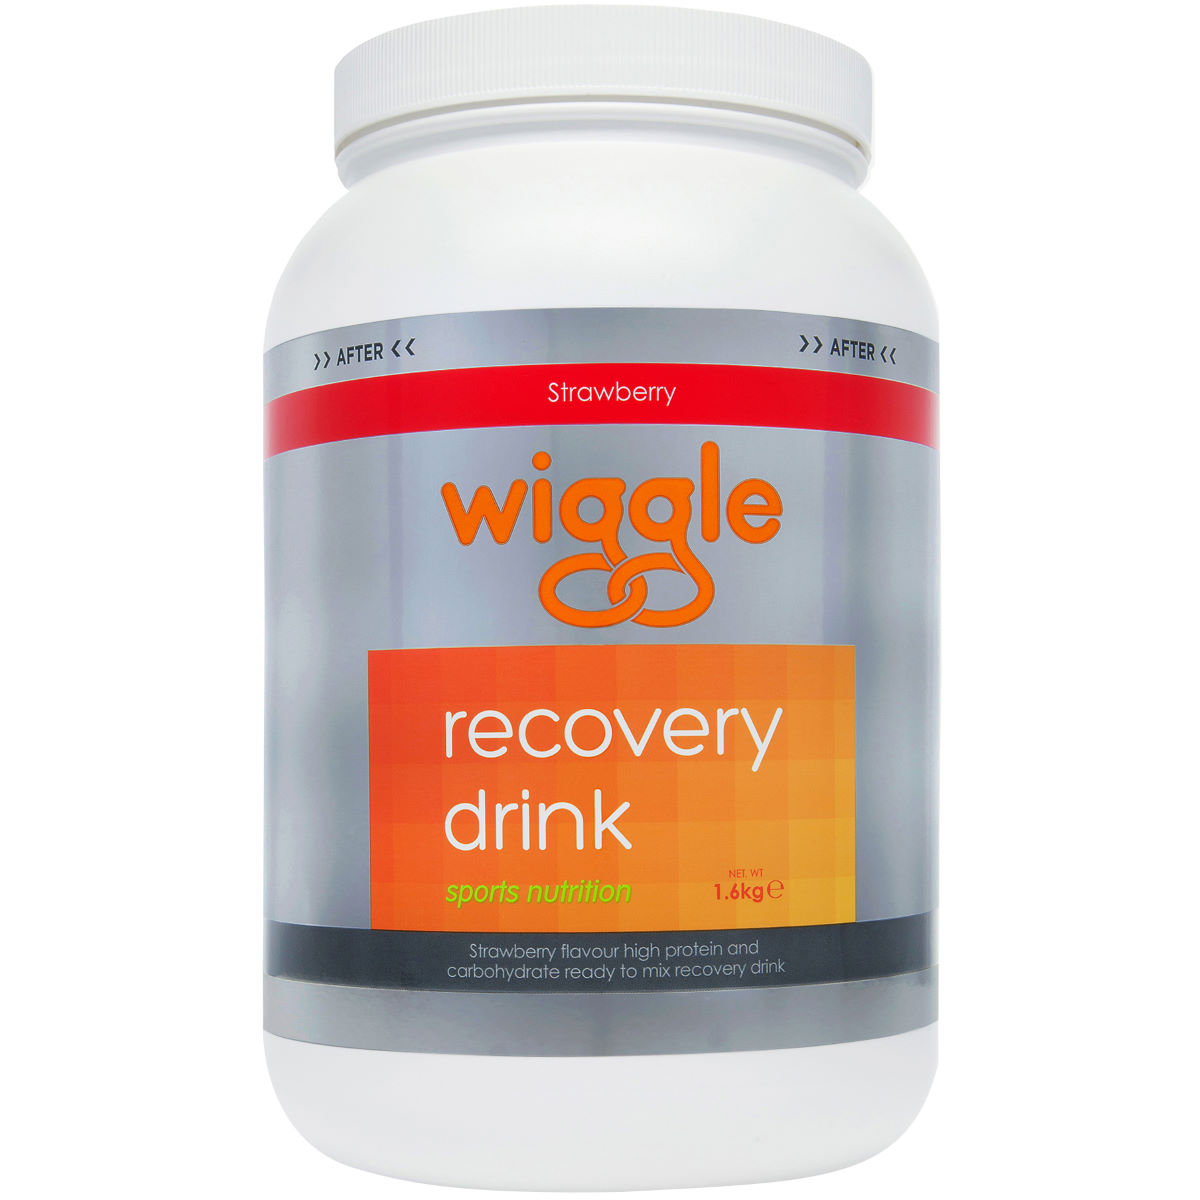 Wiggle Nutrition Recovery Drink Strawberry (1.6kg)